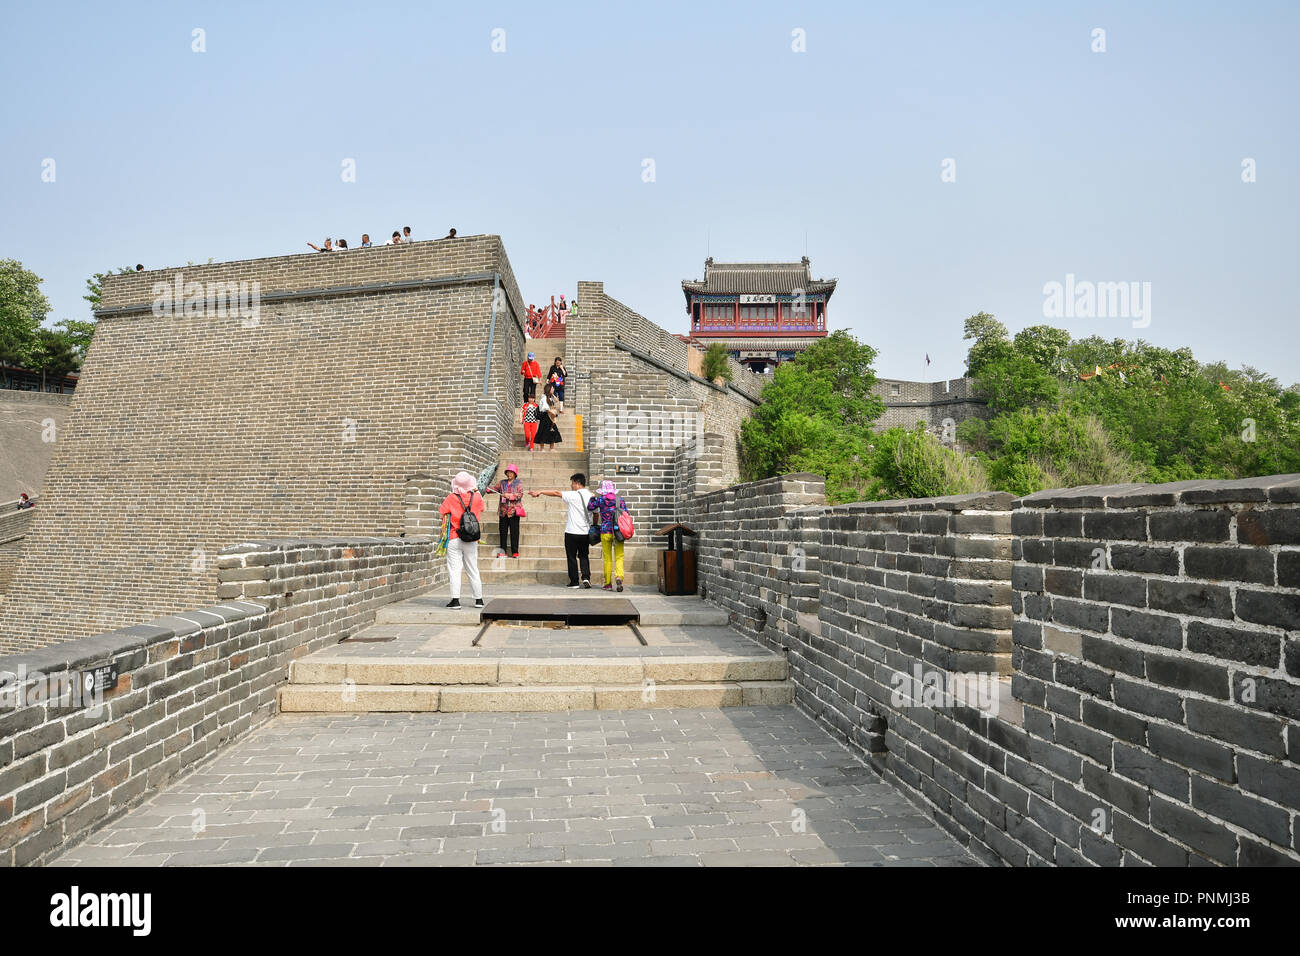 Main building of Laolongtou Great Wall Section, Old Dragons Head, Shanhai Pass,  Shanhaiguan, Qinhuangdao, Hebei Province, China. - Stock Image